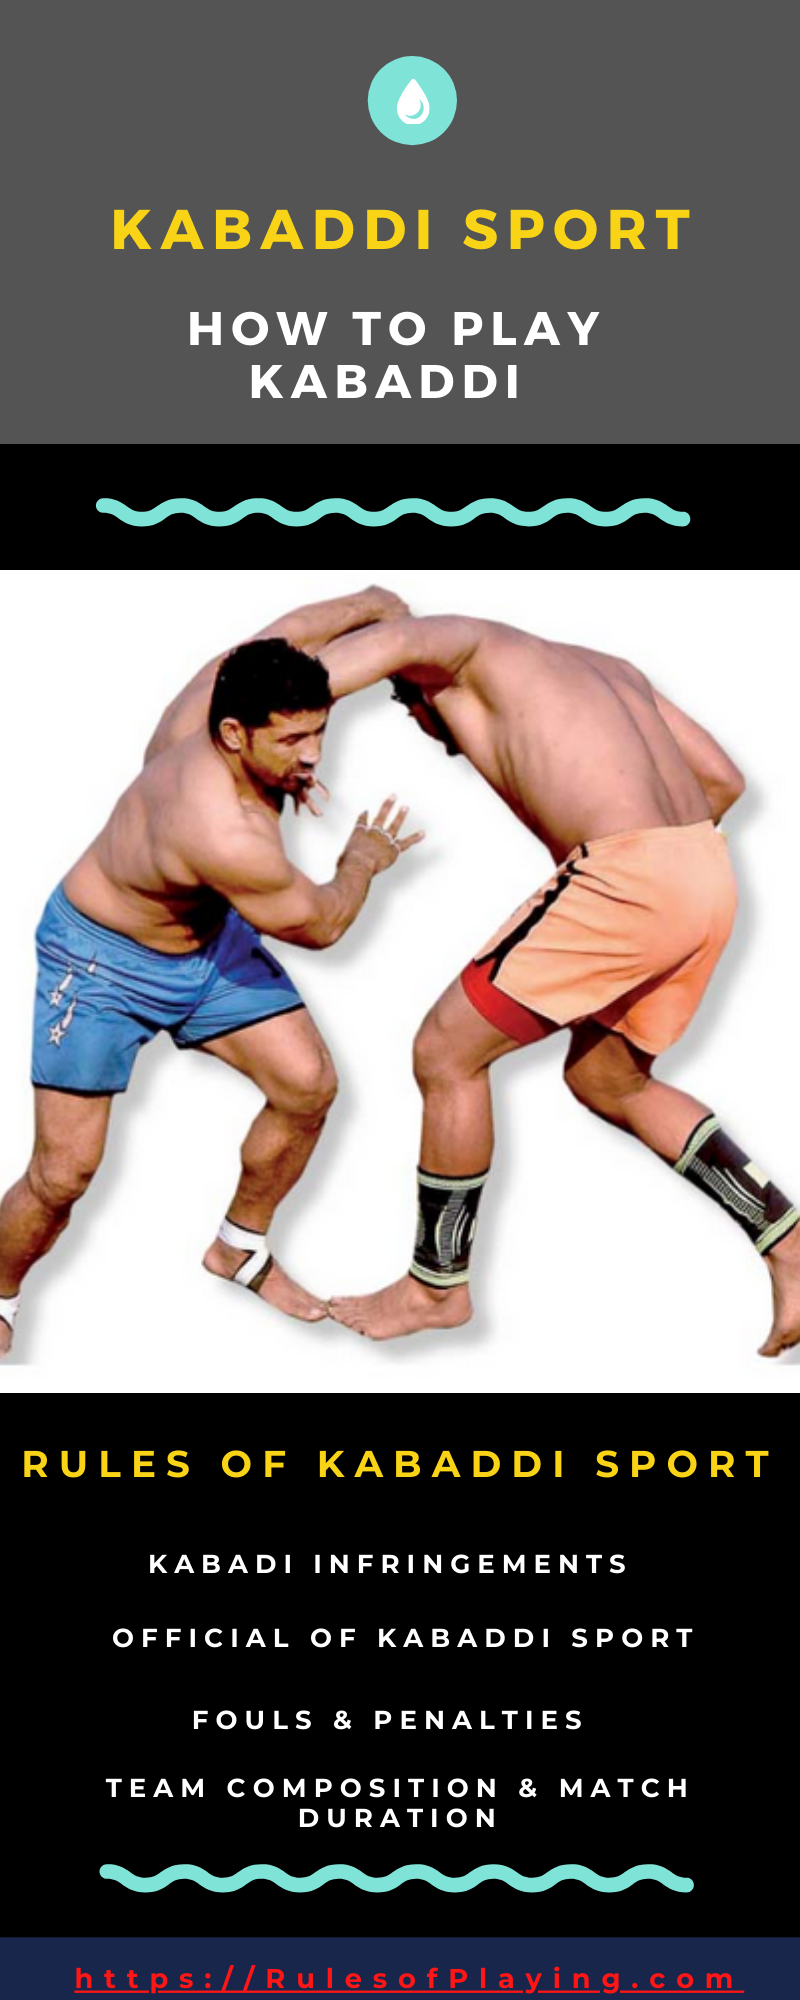 Rules of Kabaddi, How to play kabaddi, official rules, kabaddi court, ground